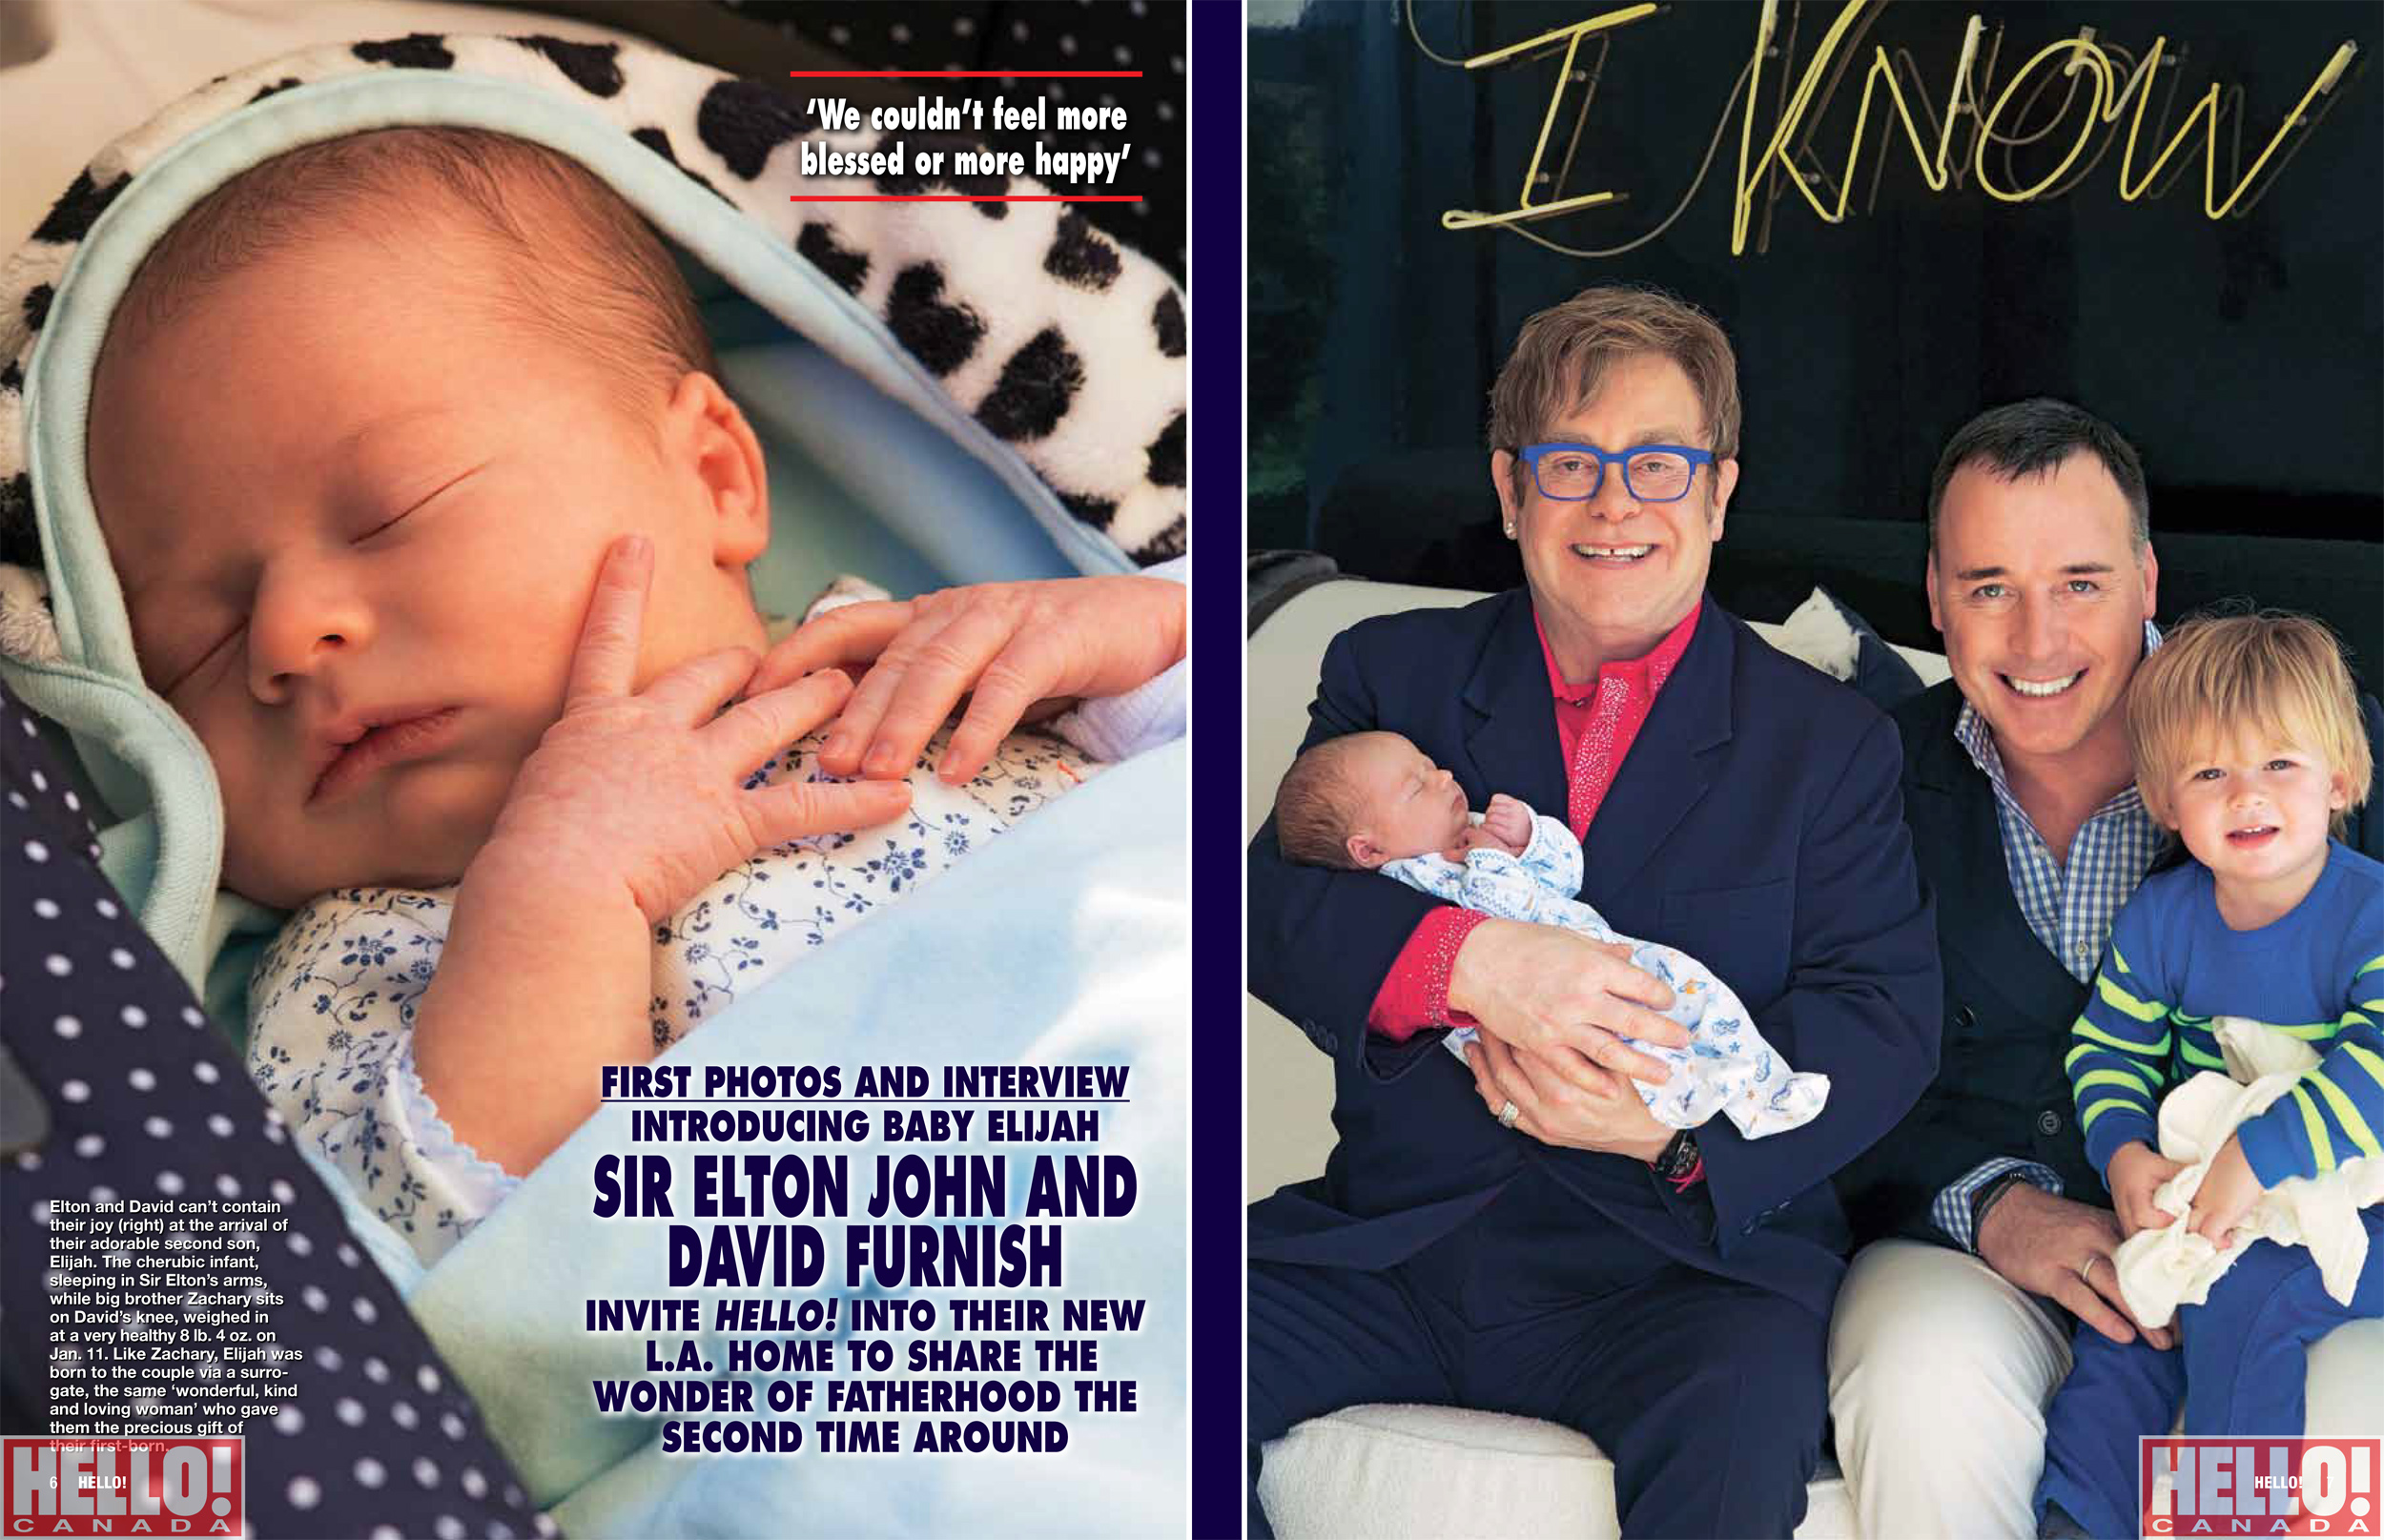 Sir Elton John And David Furnish Introduce Baby Elijah